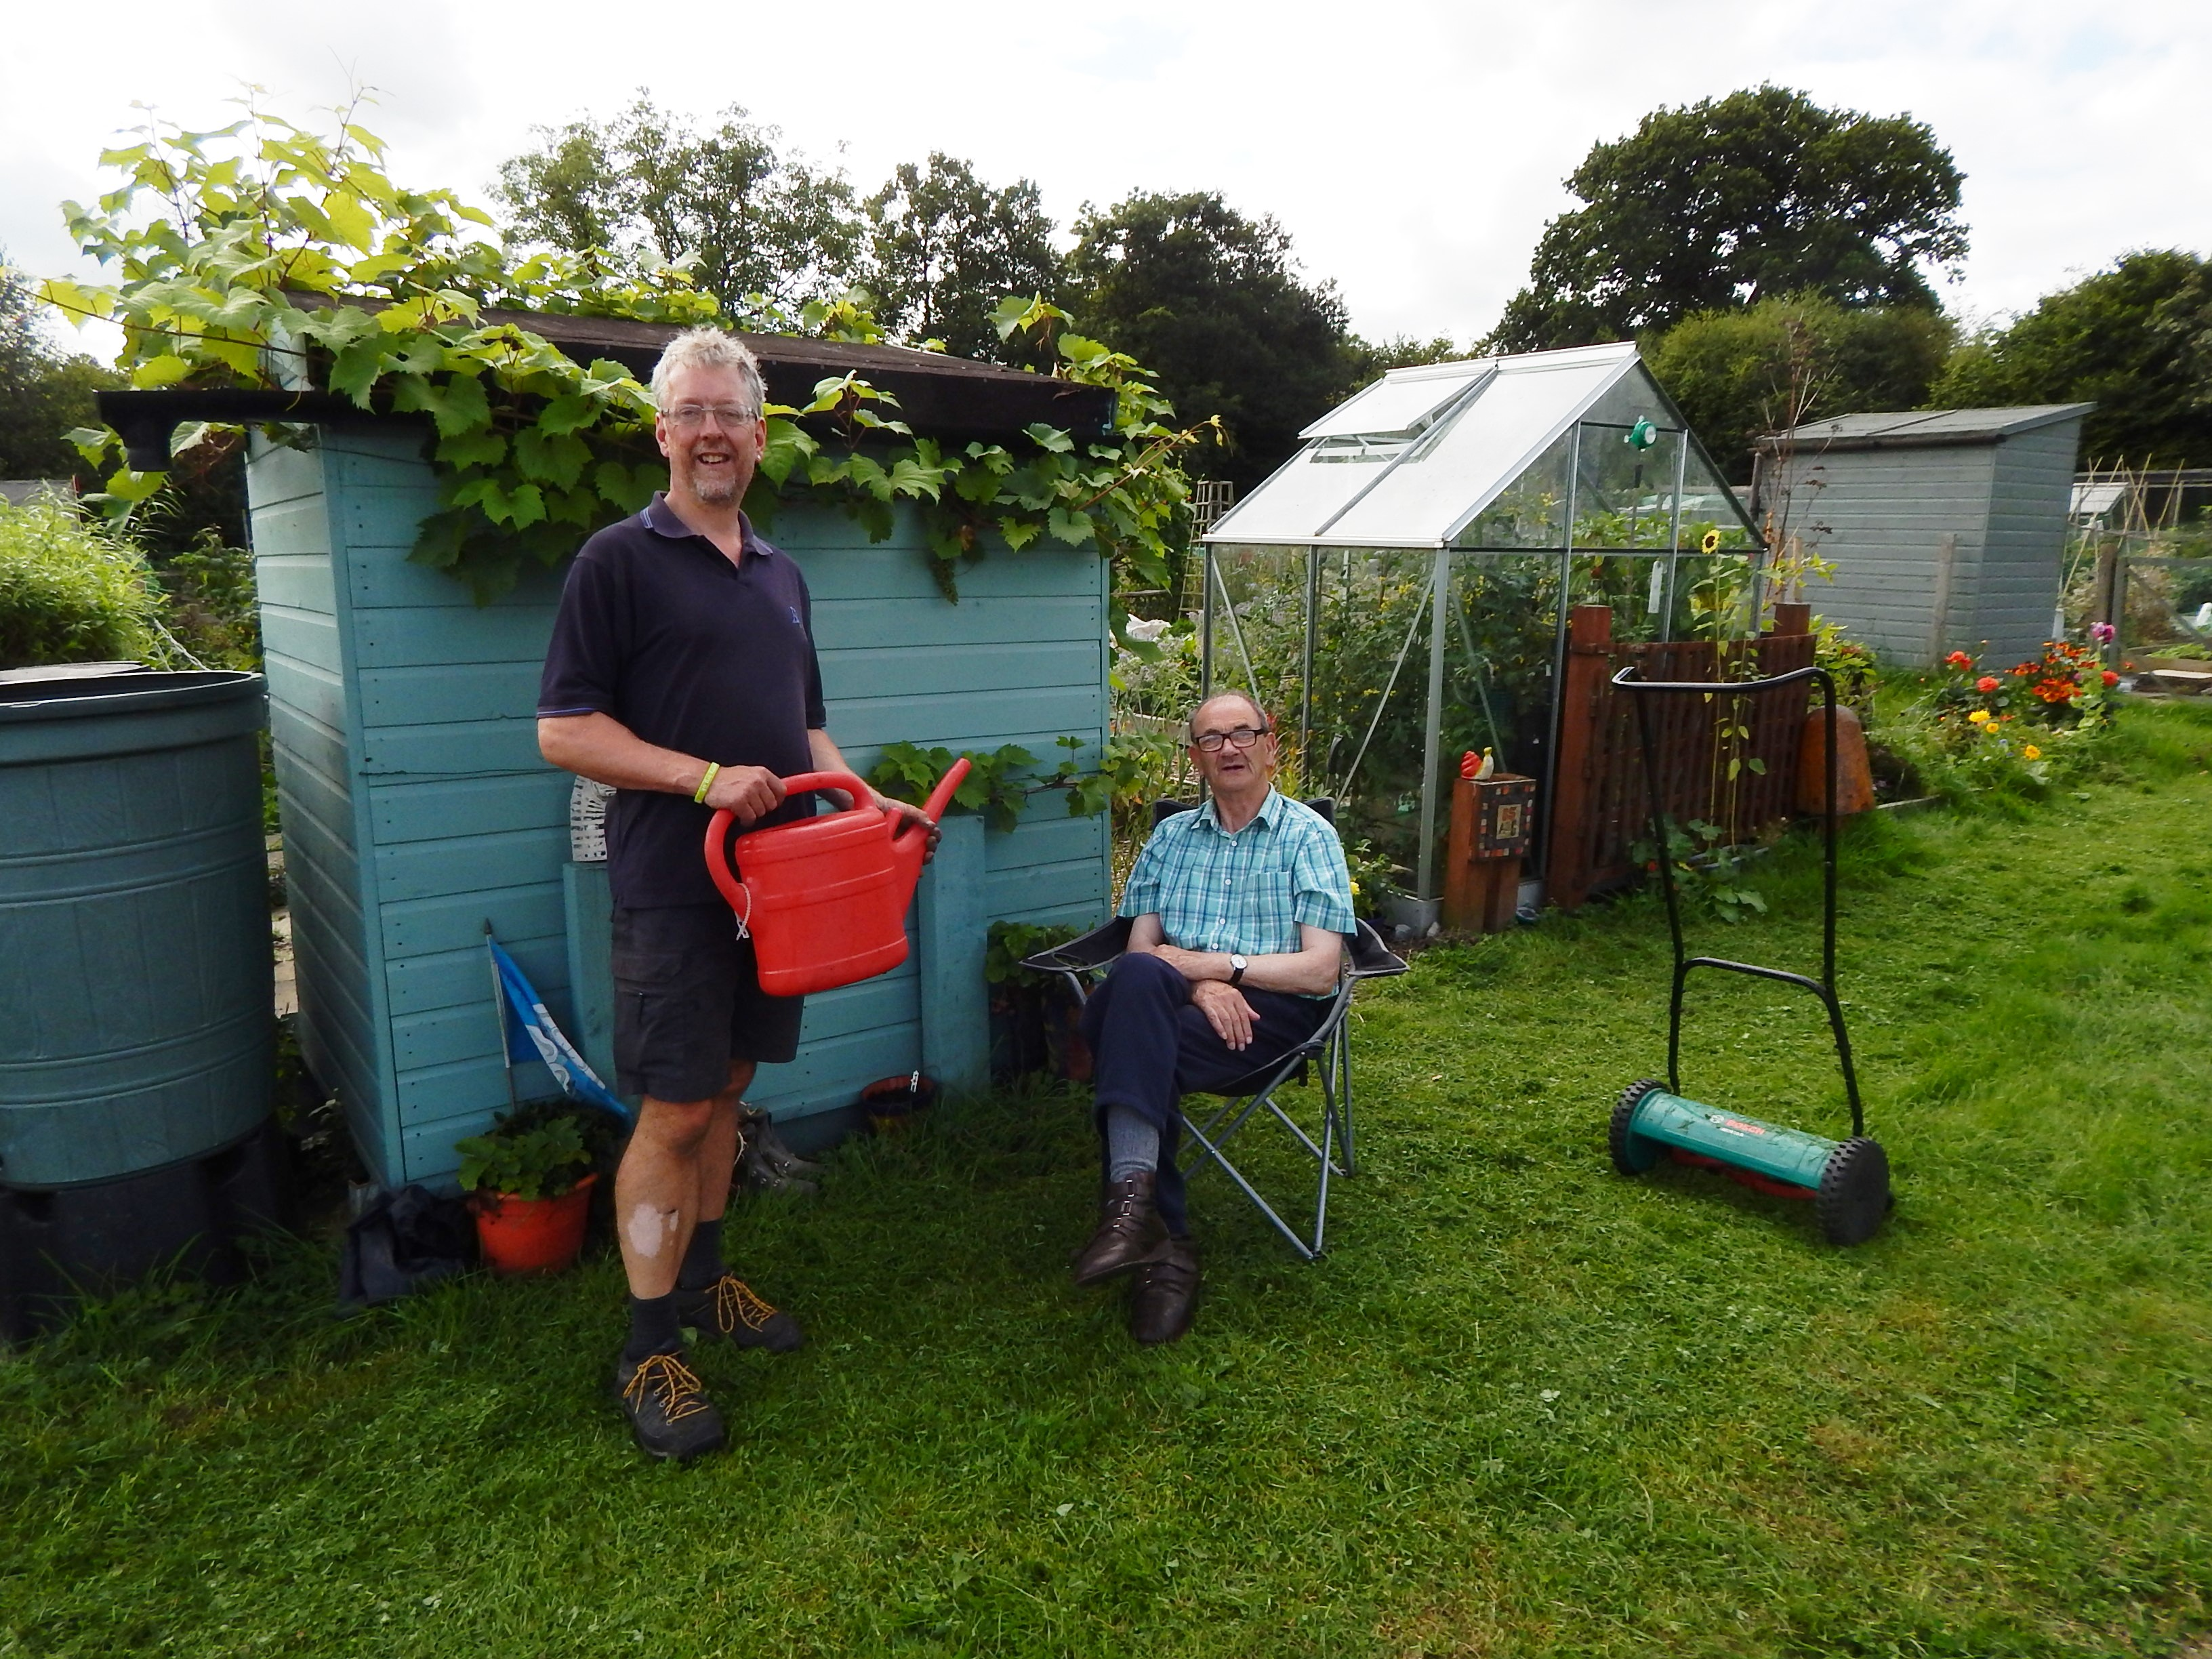 Two men at an allotment by a shed; one is sitting down, the other is standing holding a watering can.